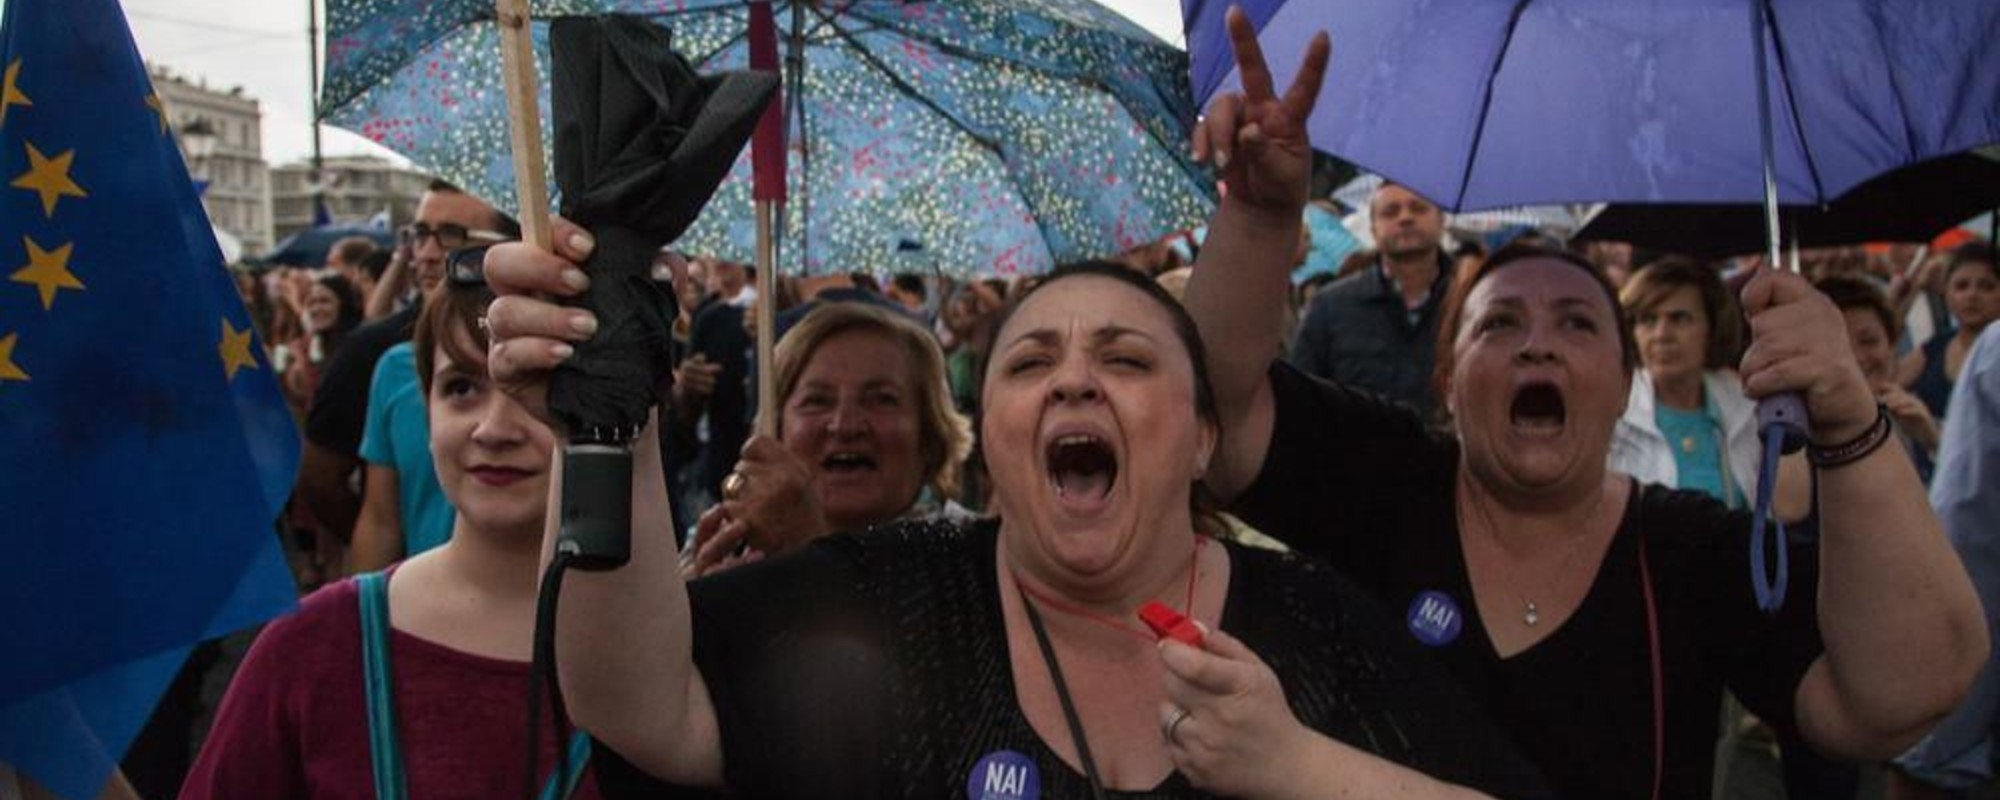 Greeks Filled Athens' Syntagma Square to Say 'Yes' to the EU Bailout Plan Last Night